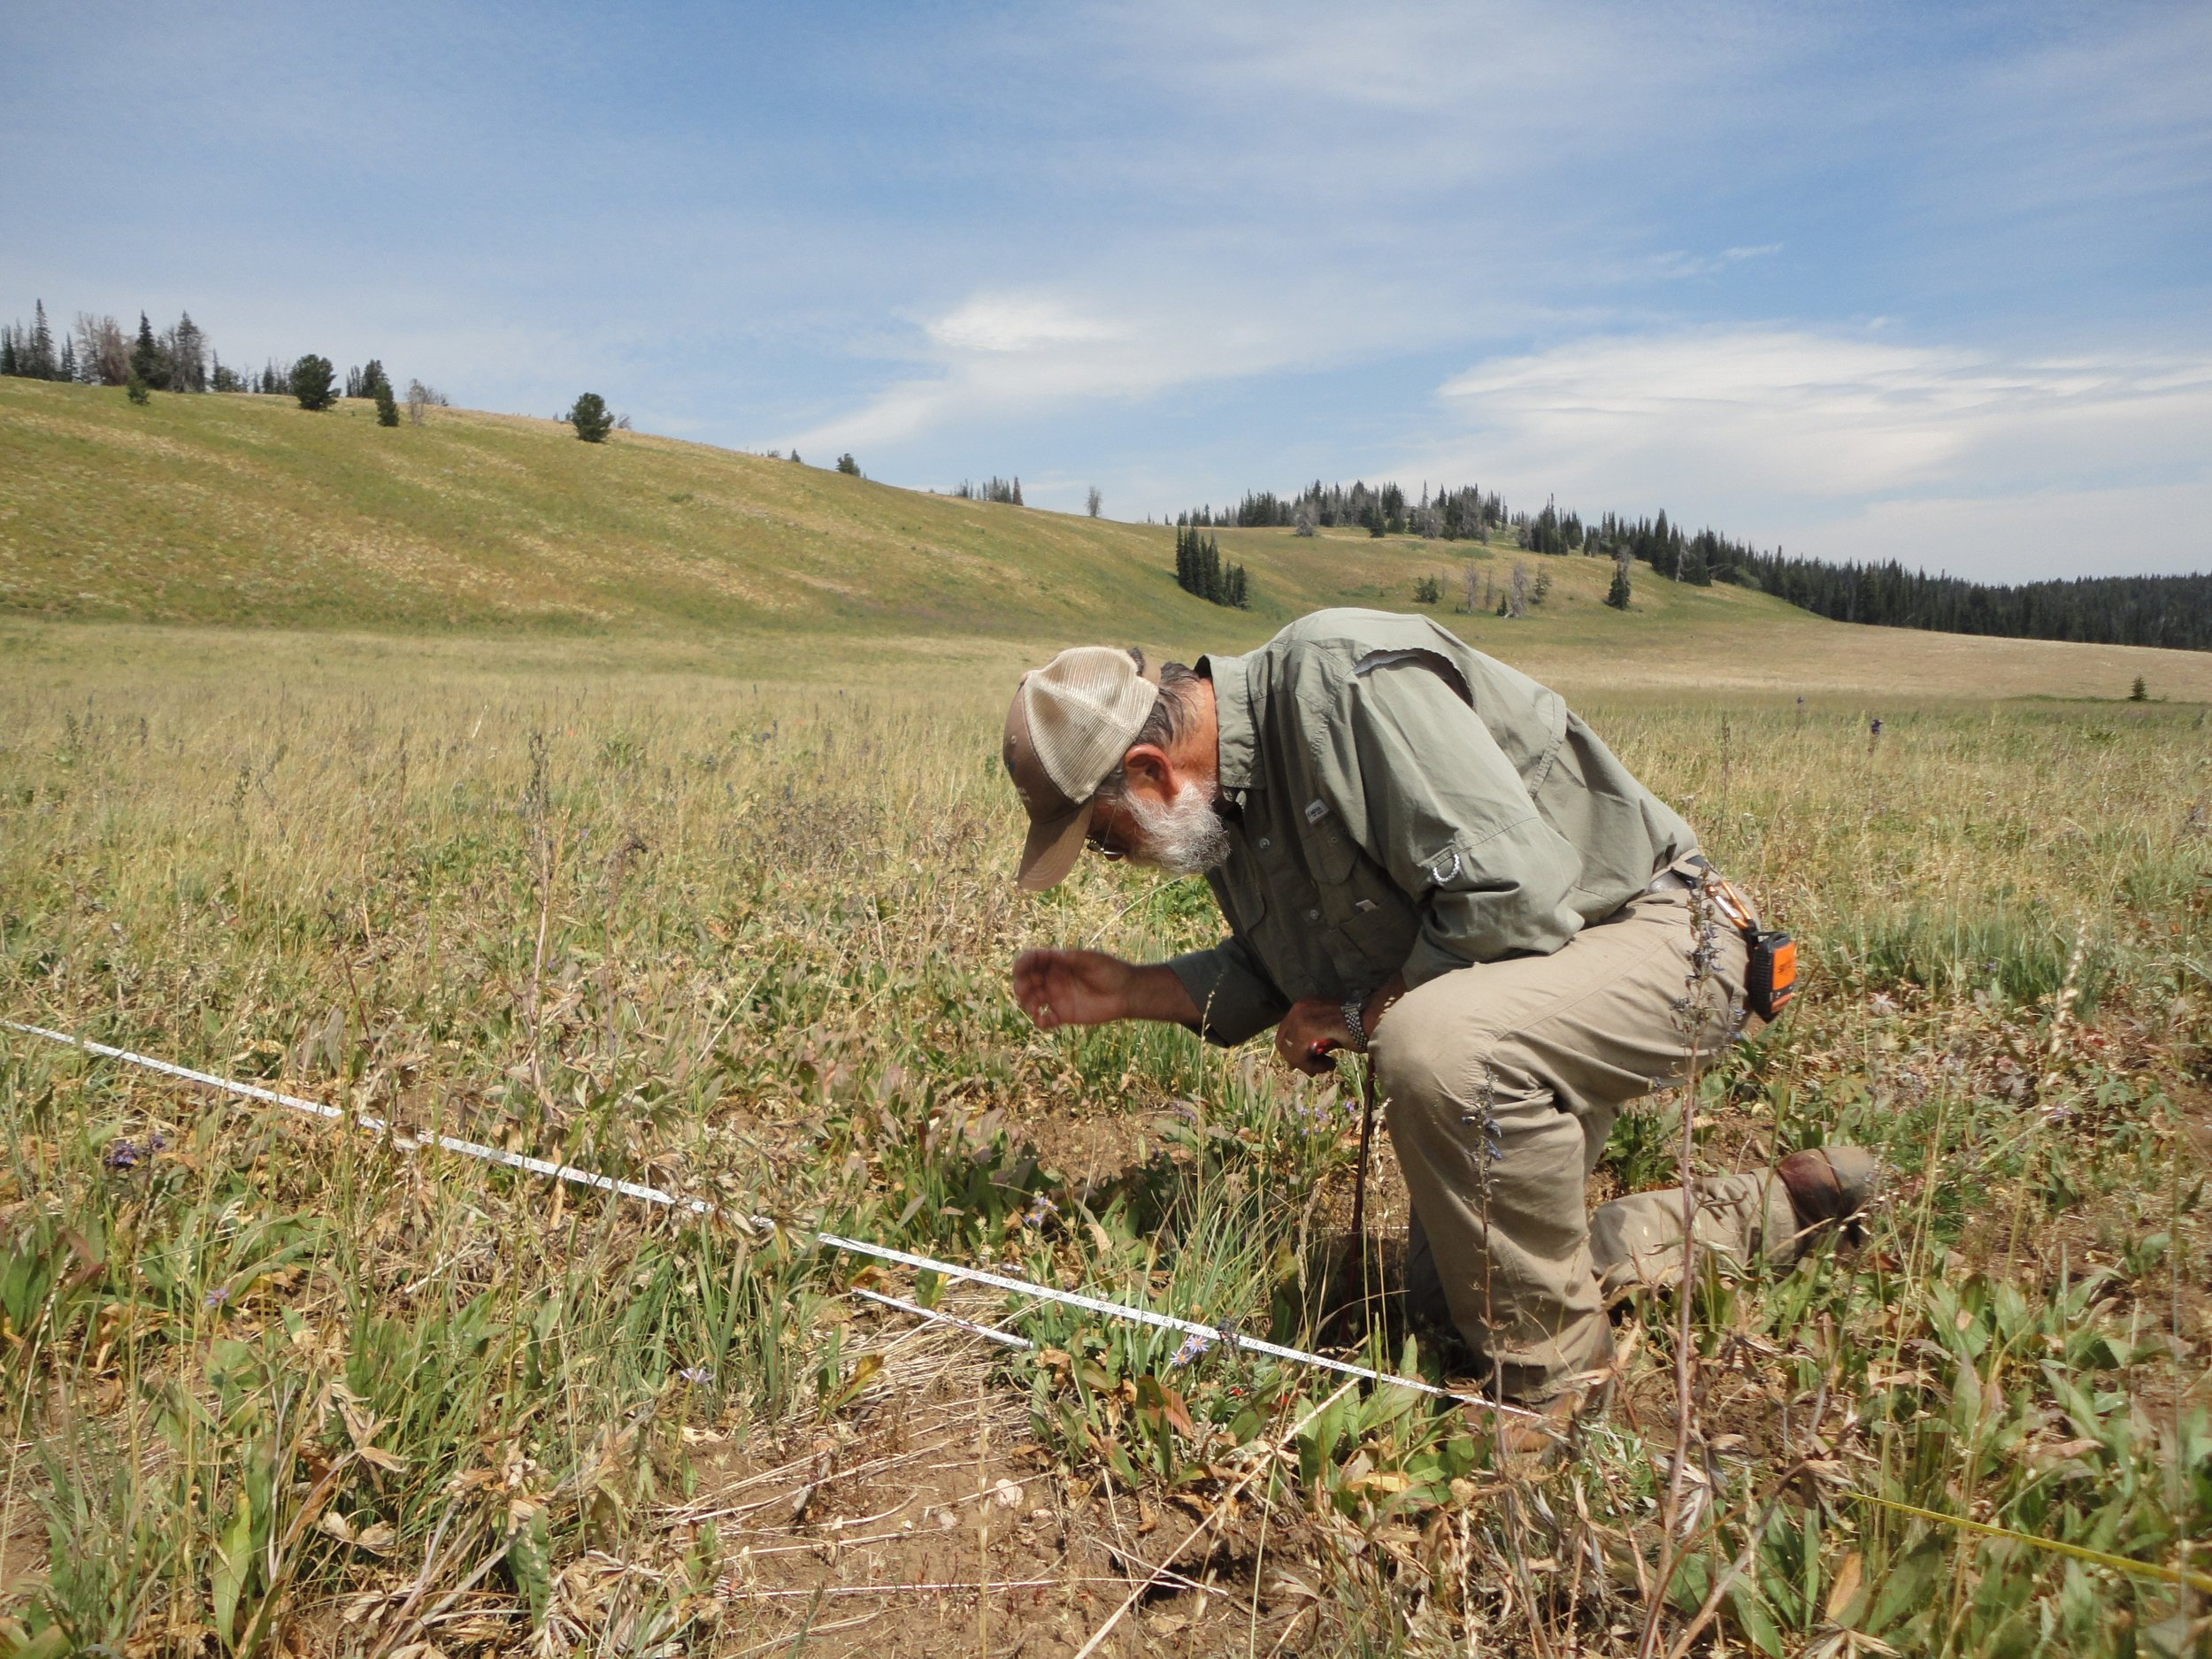 Chuck Butterfield, PhD with Y2 Consultants identifies plant species during rangeland monitoring. Photo credit: Robb Sgroi.